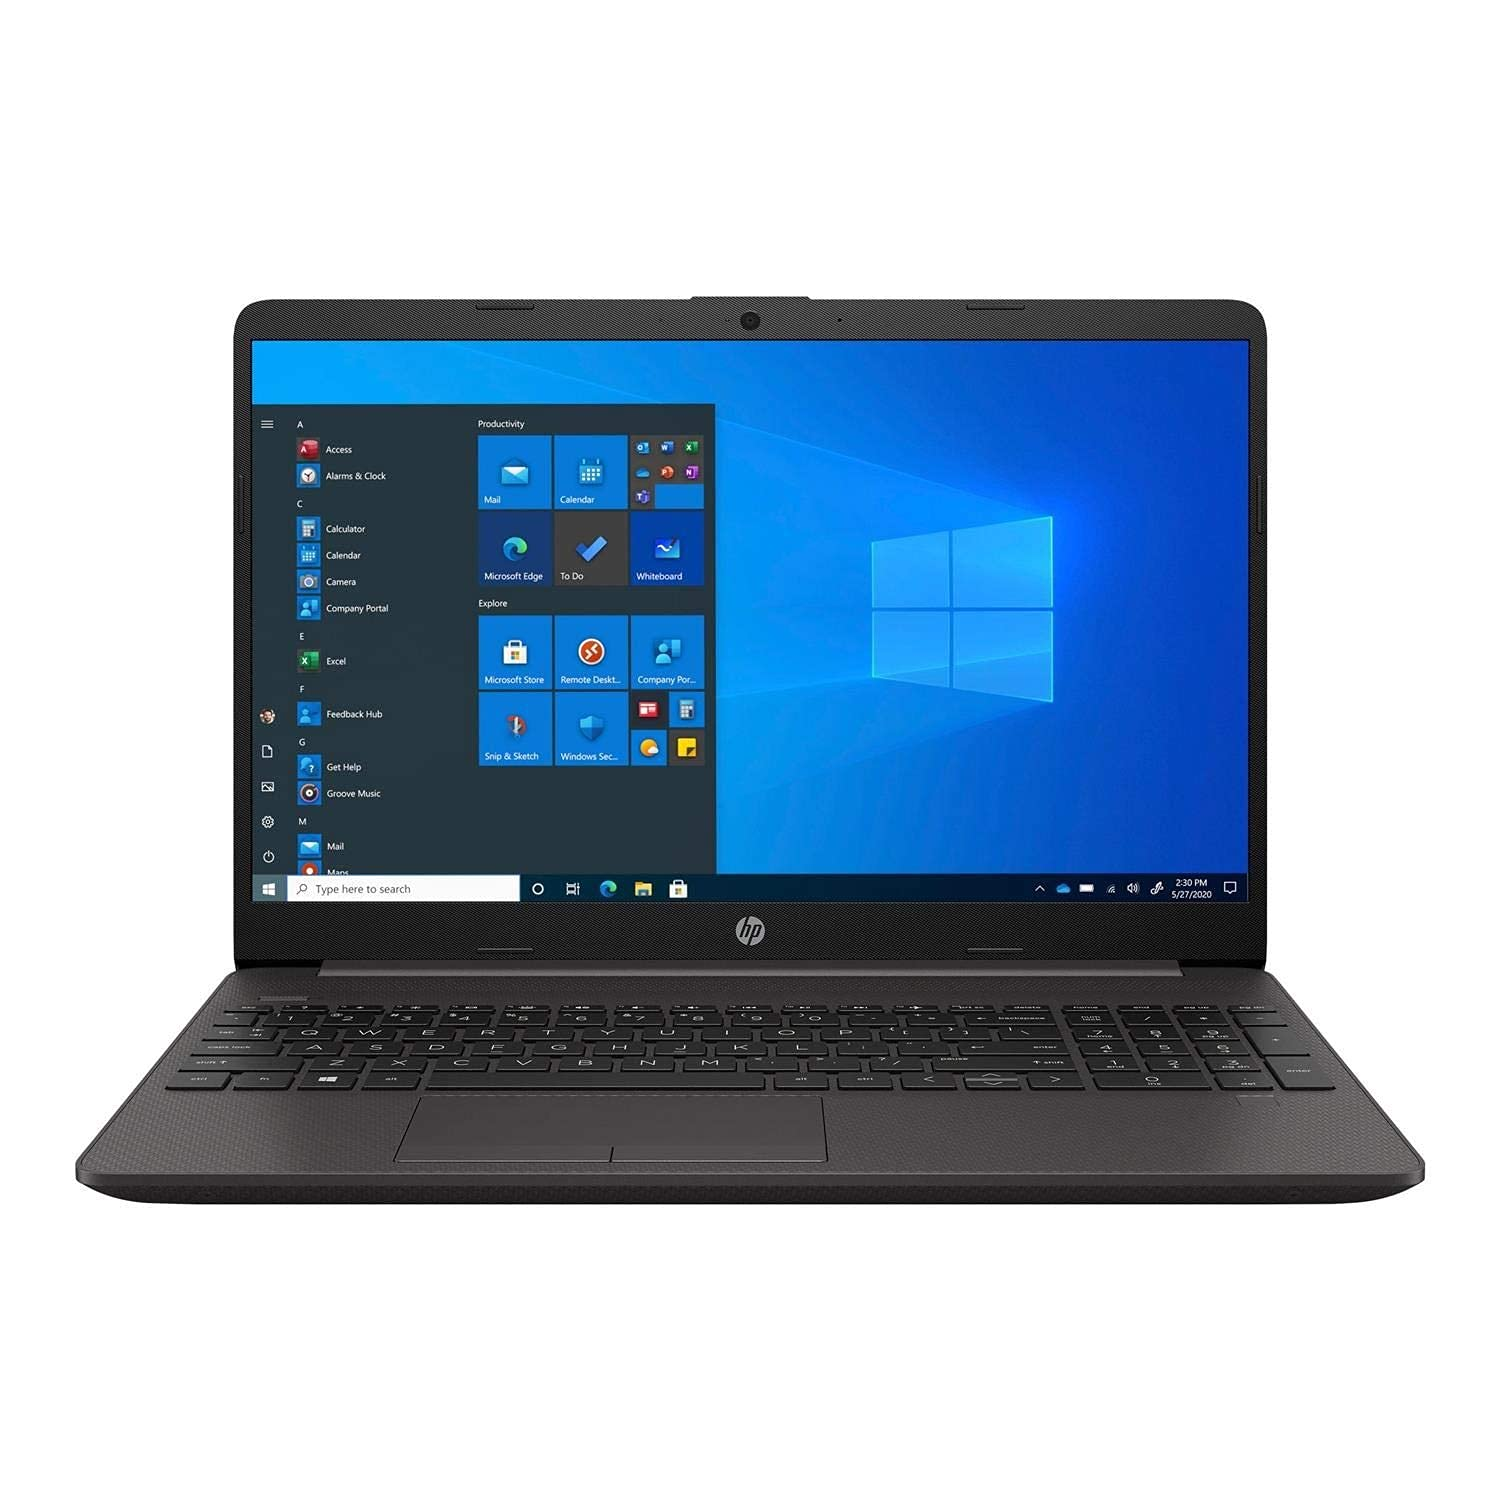 Best gaming laptops under 35000 INR in India